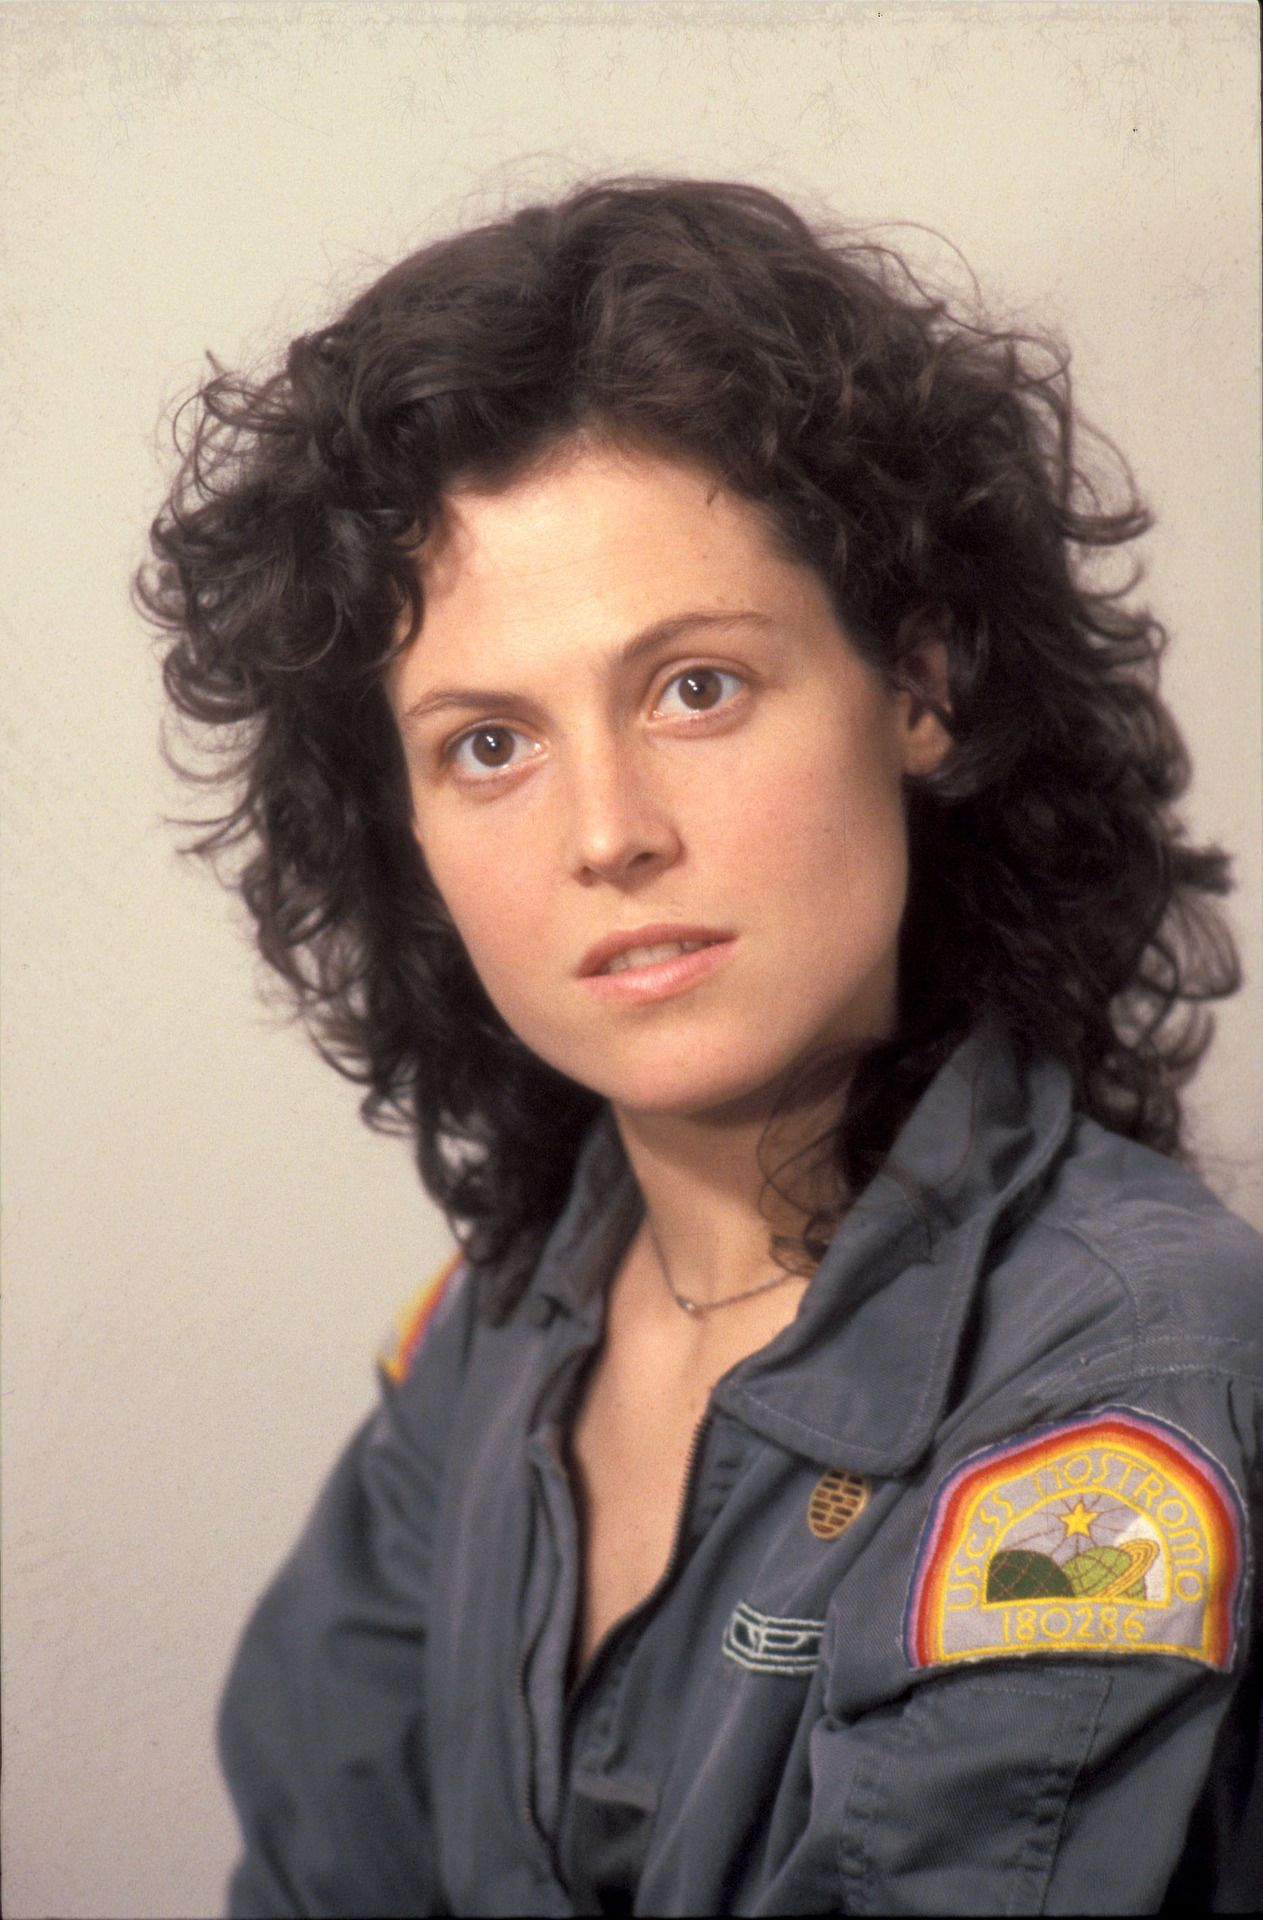 Sigourney Weaver Filmography And Biography On Movies Film: Young Sigourney Weaver (Alien)